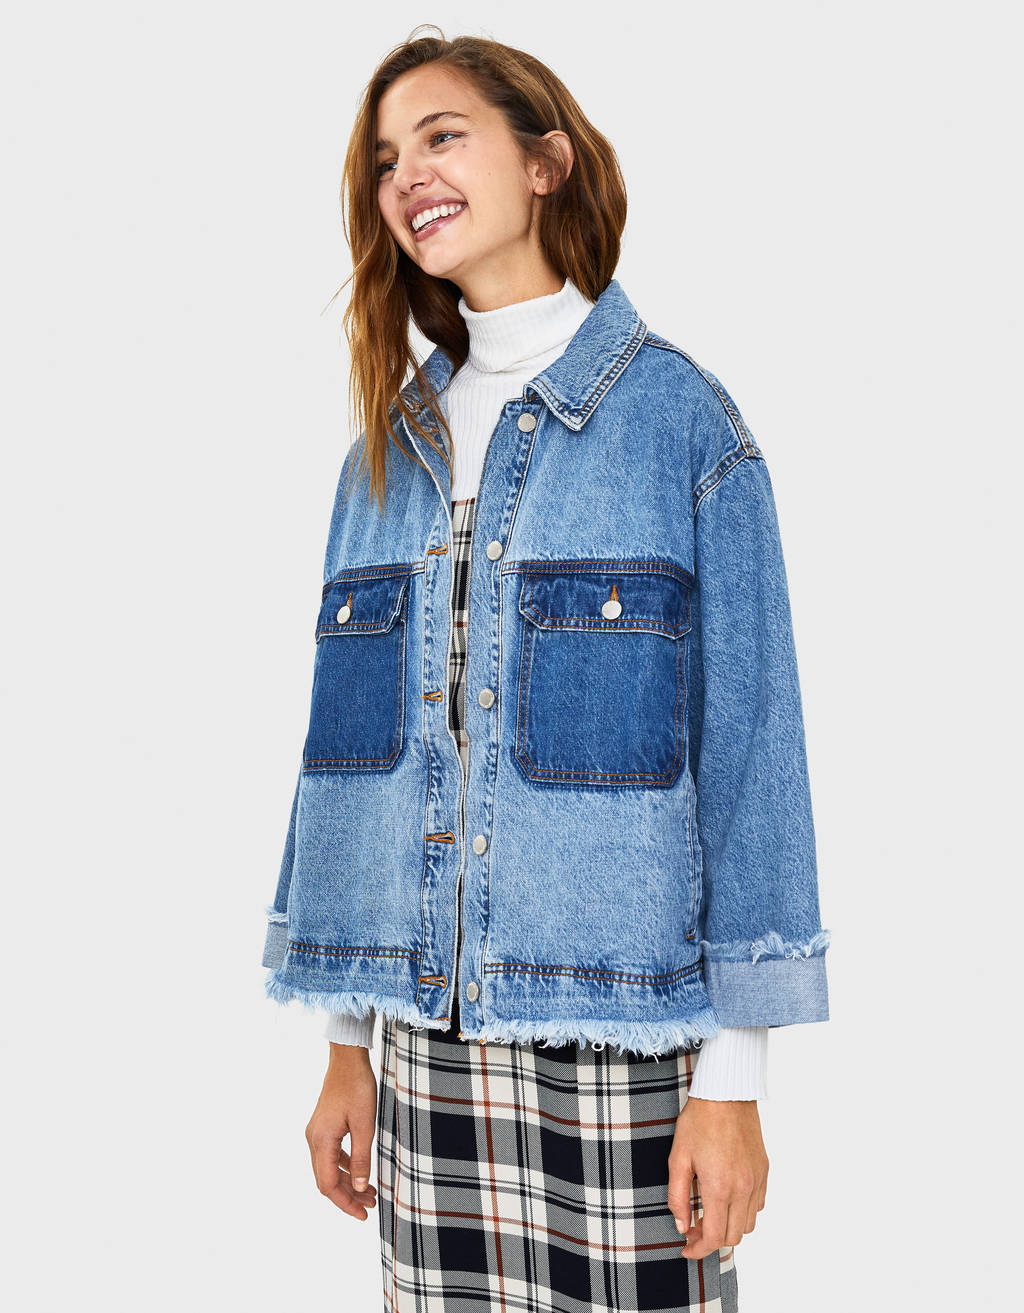 Contrast denim jacket